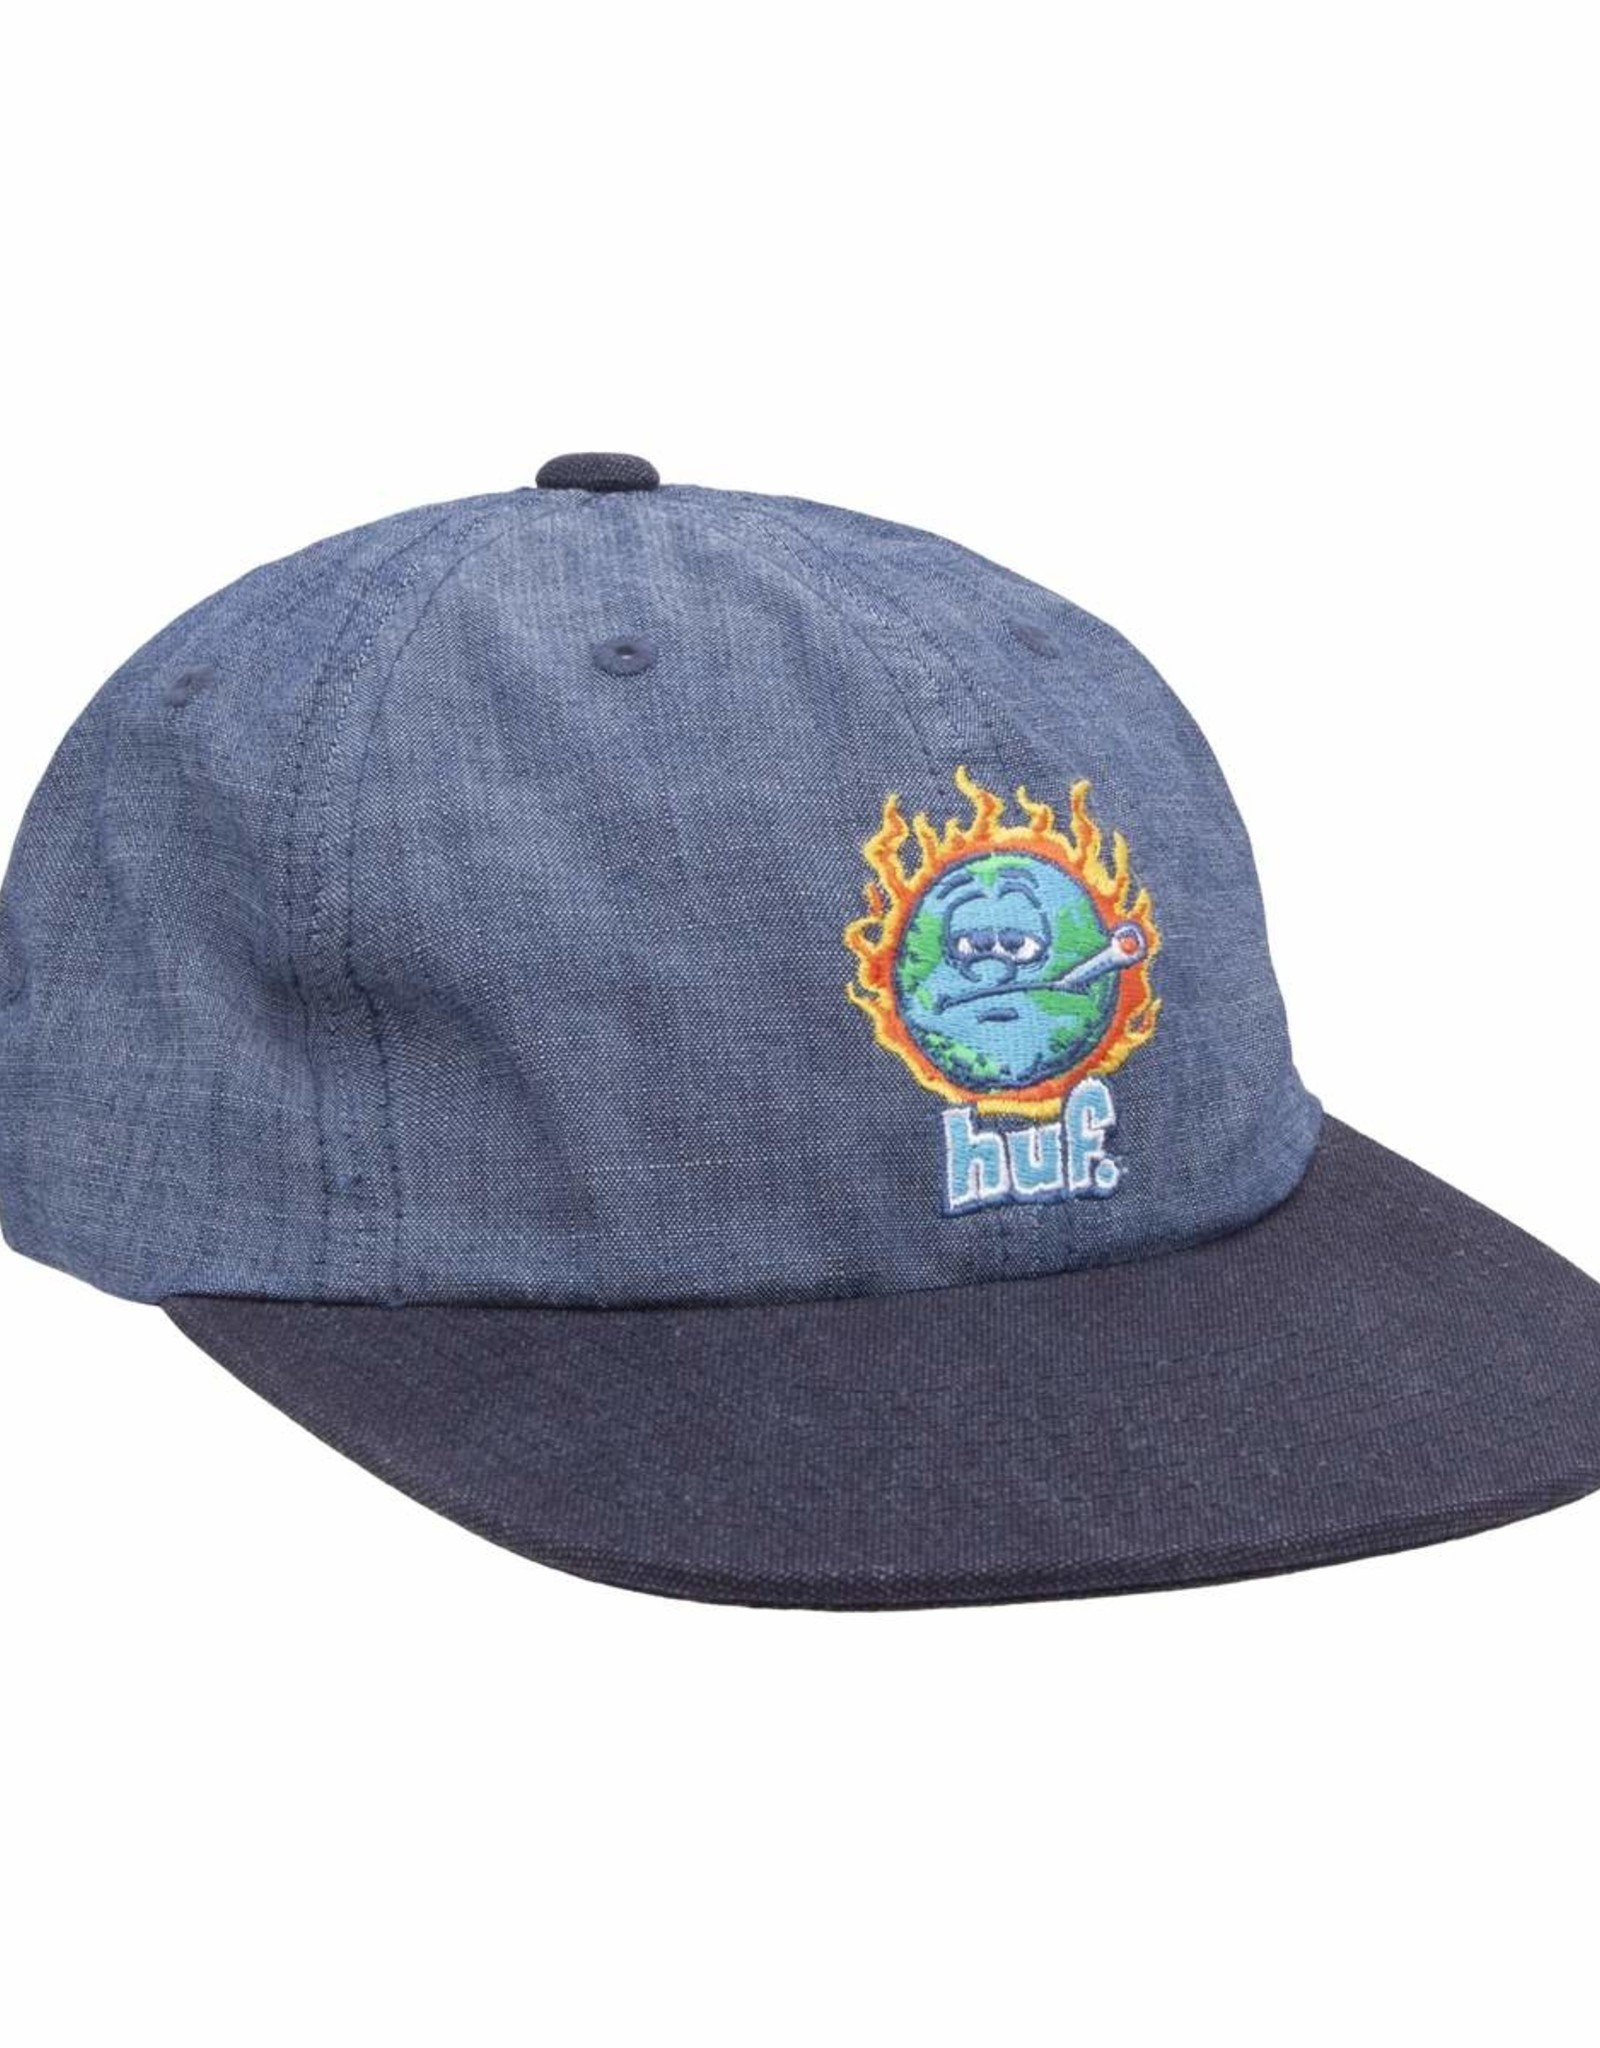 HUF GLOBAL WARMING 6 PANNEL HAT - BLUE CHAMBRAY